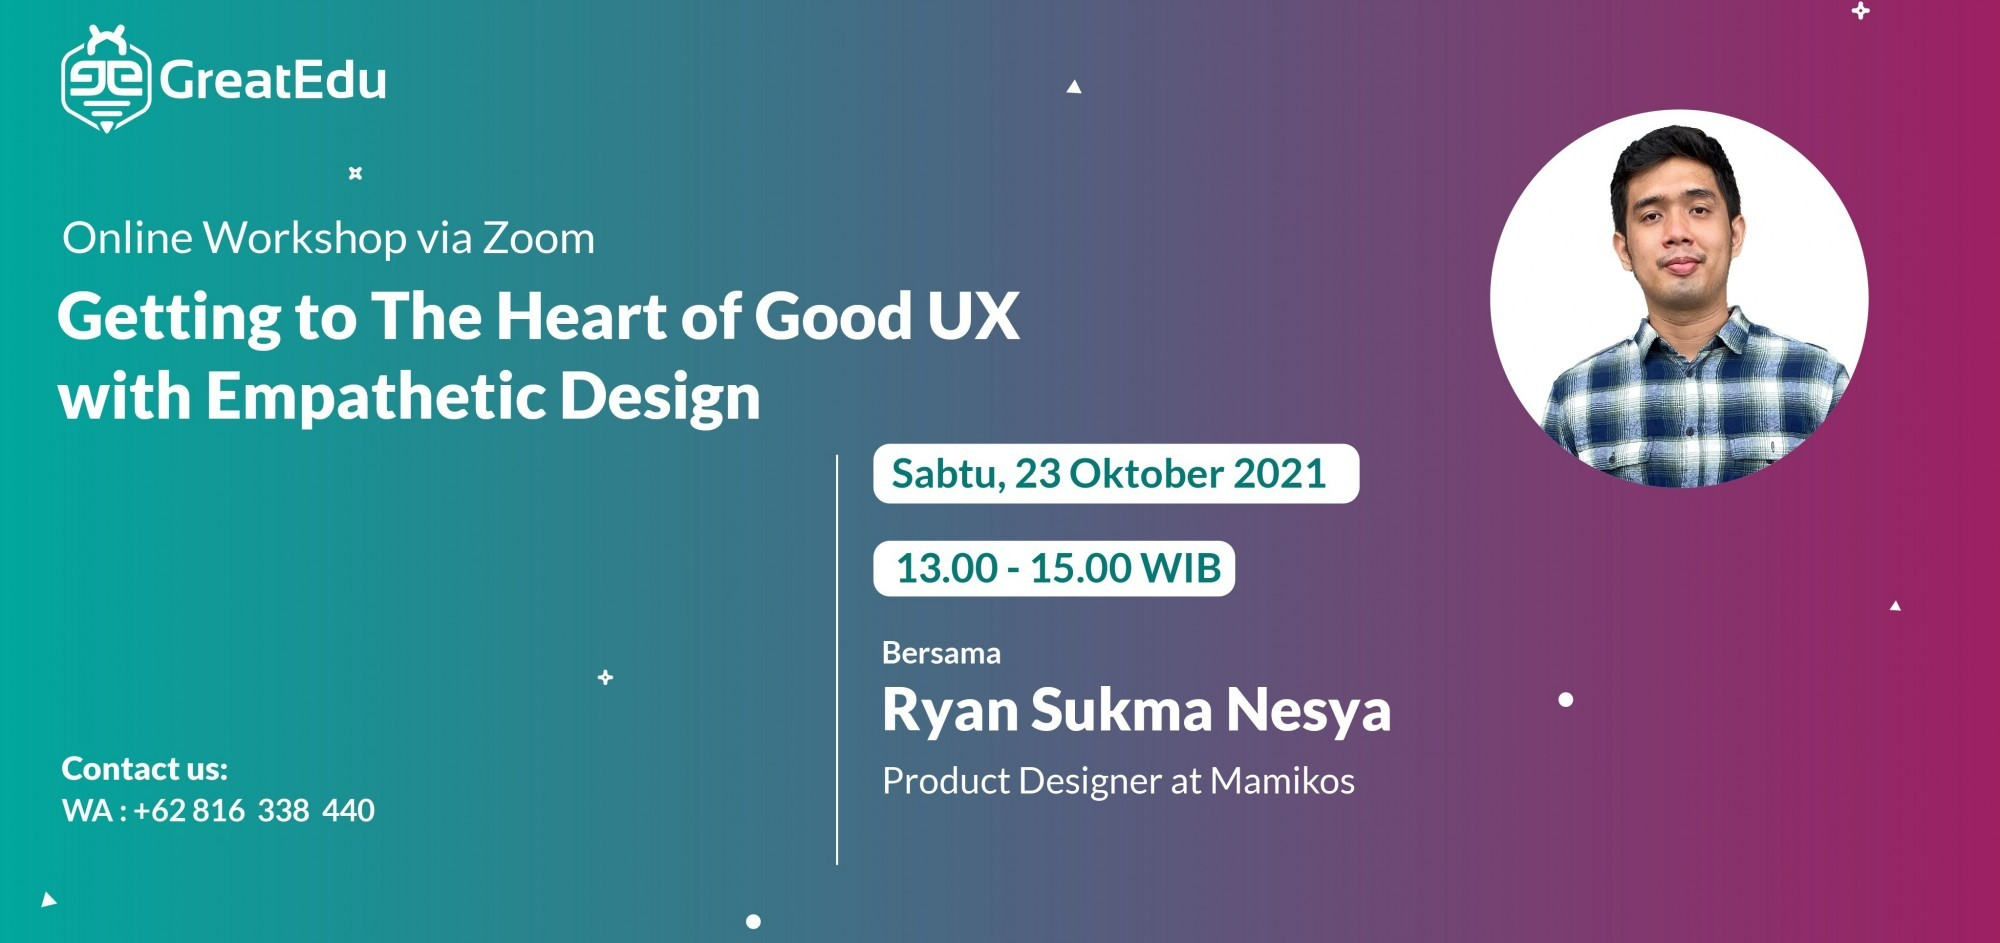 Getting to The Heart of Good UX with Empathetic Design